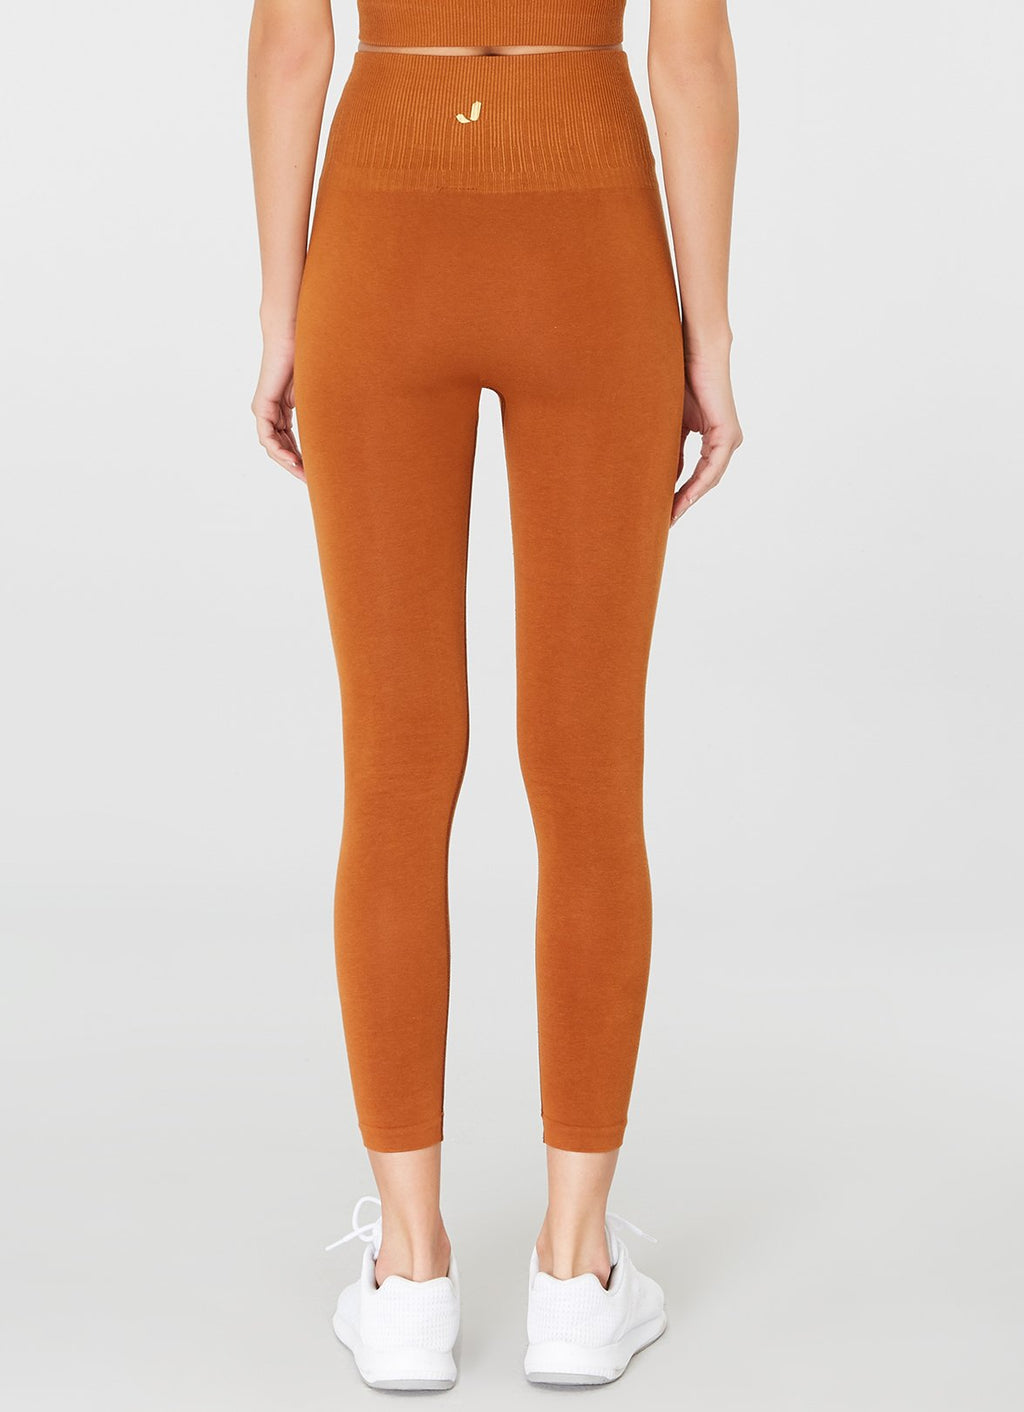 Jerf Luz Sugar Almond Leggings